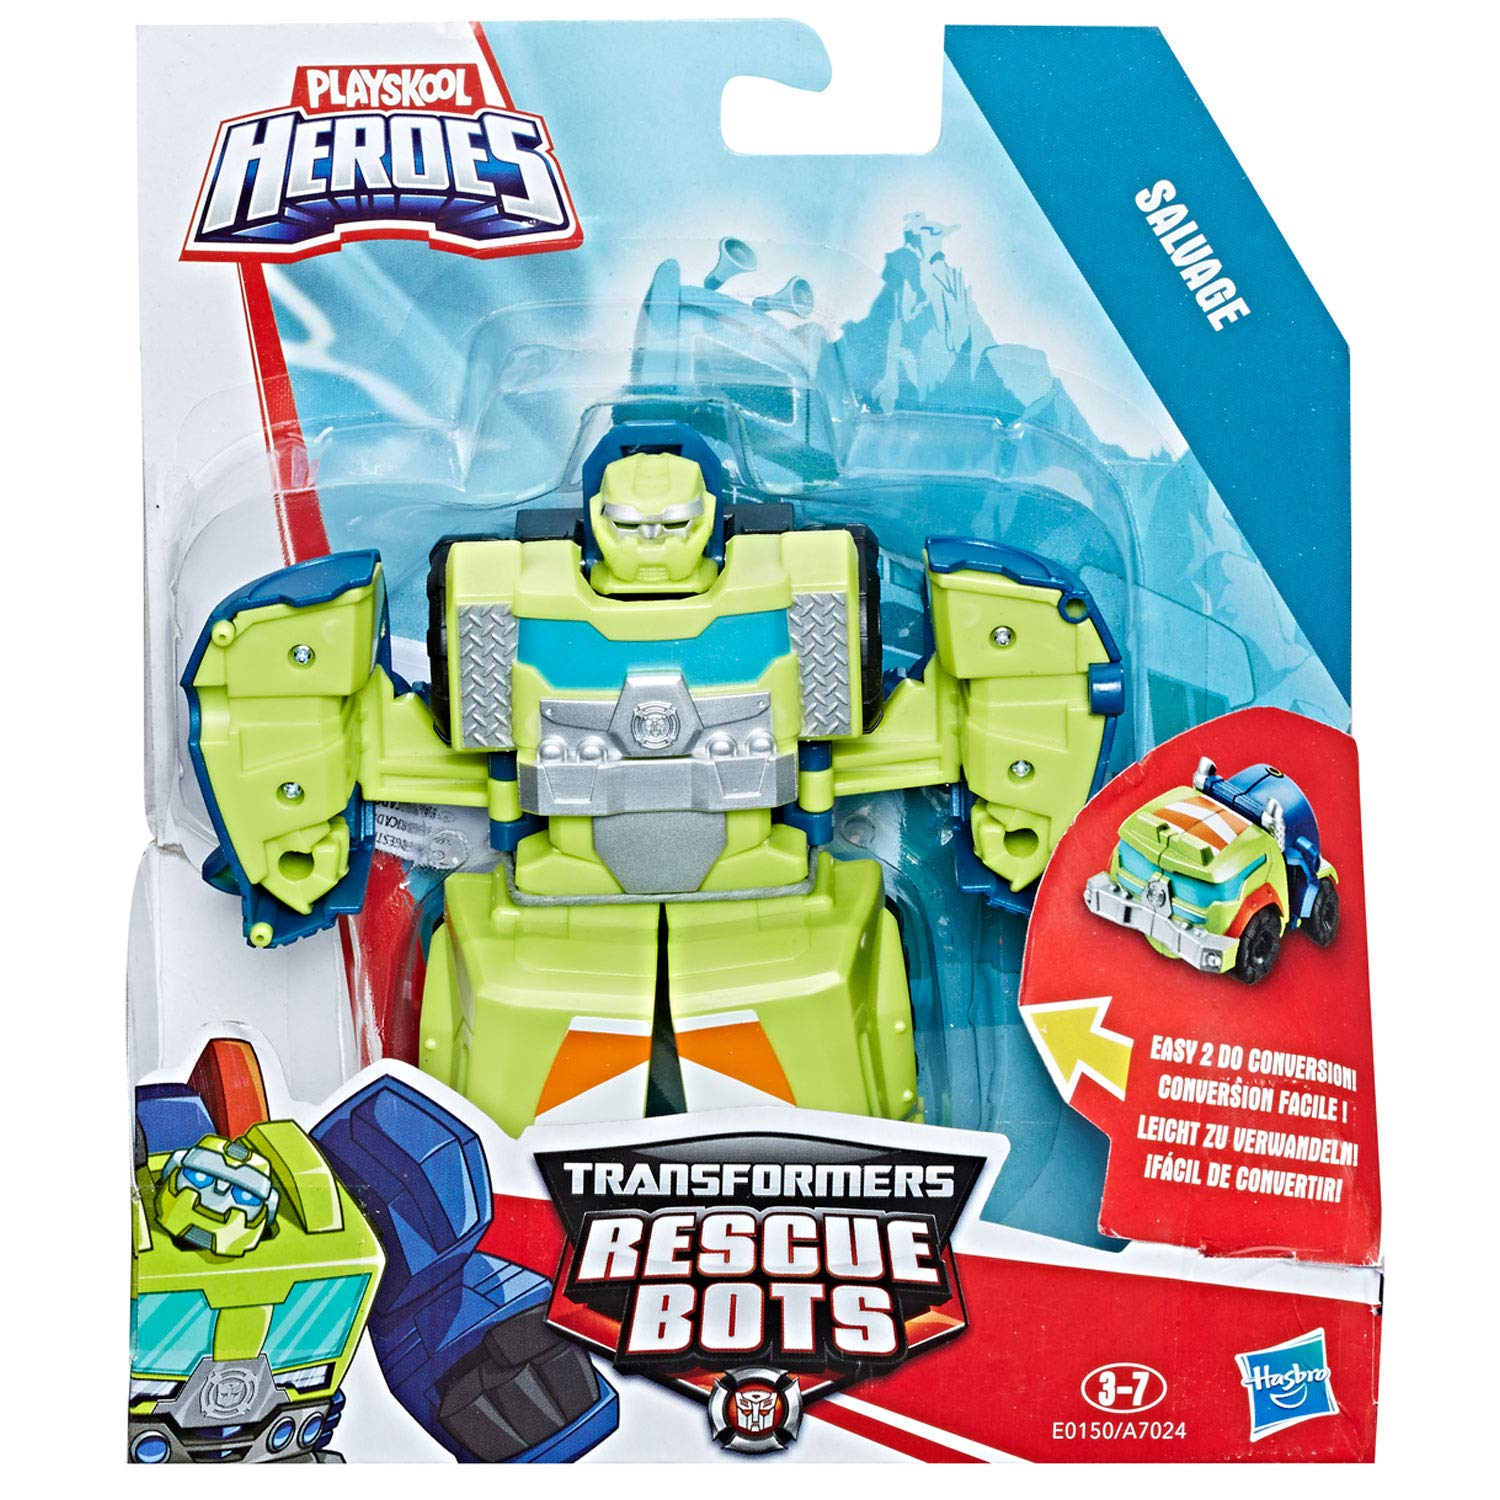 Playskool Heroes Transformateurs Rescue Bots Salvage CEMENT TRUCK